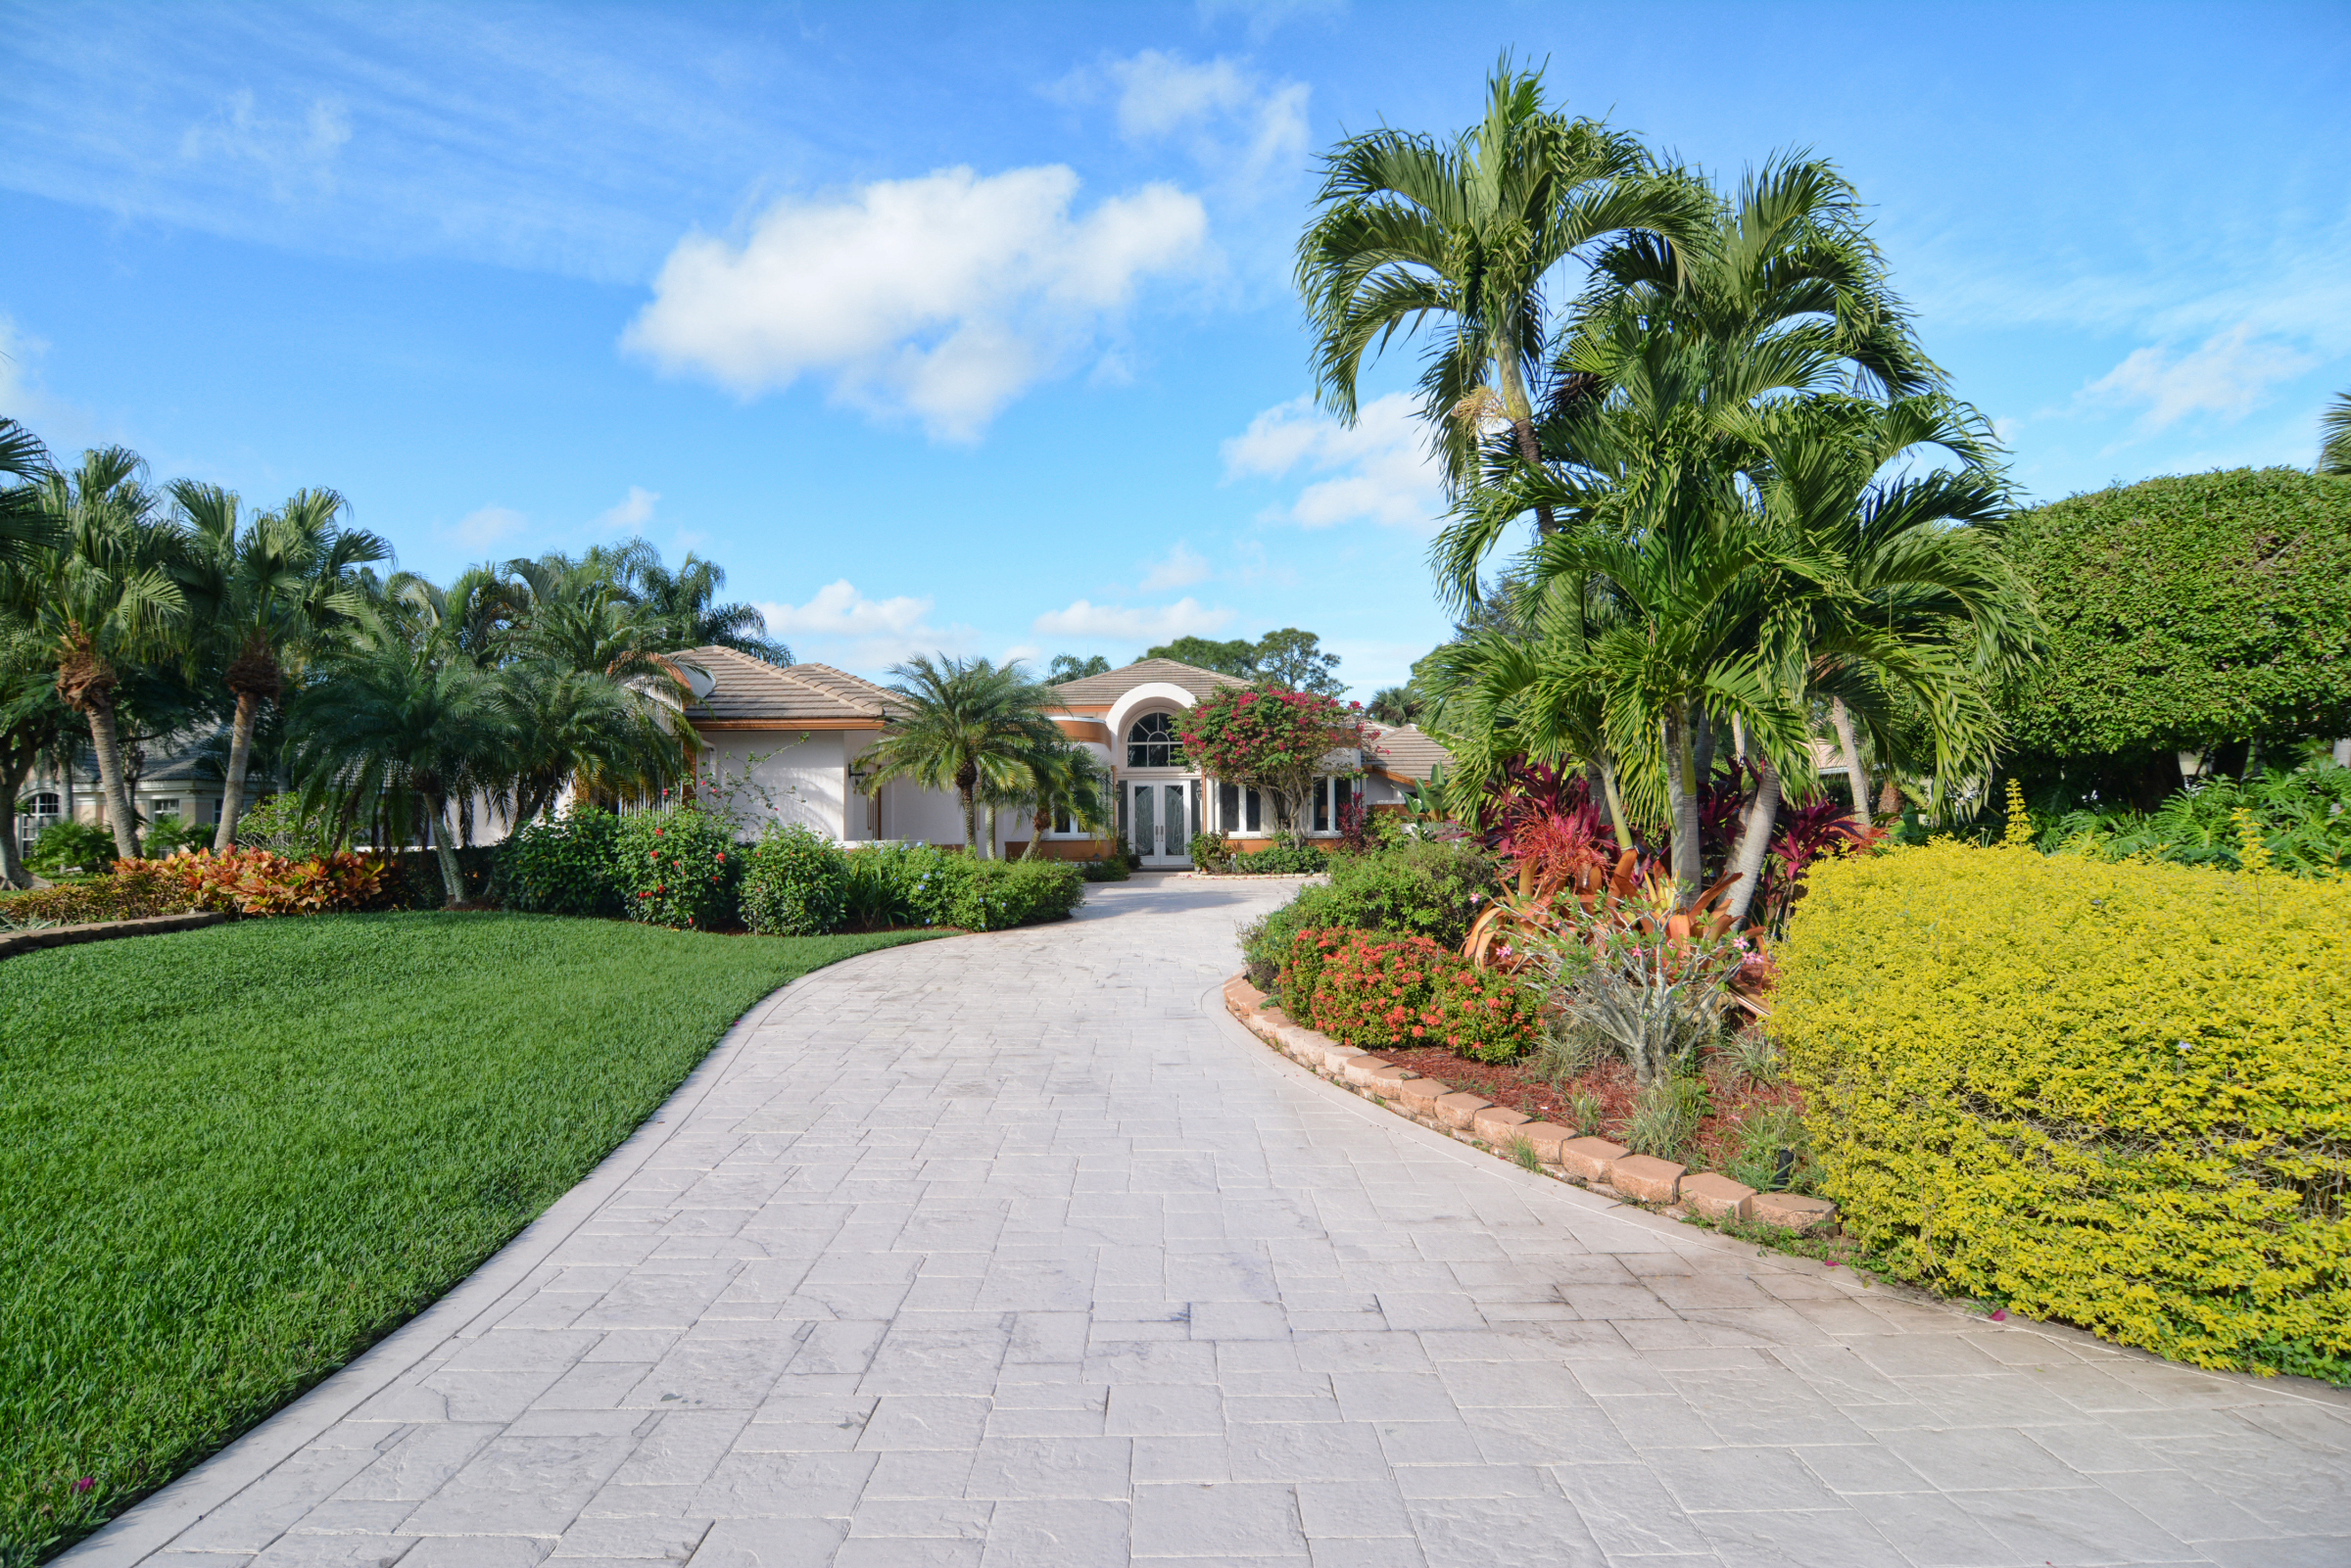 Maison unifamiliale pour l Vente à 8179 Lakeview Drive Ironhorse, West Palm Beach, Florida, 33412 États-Unis